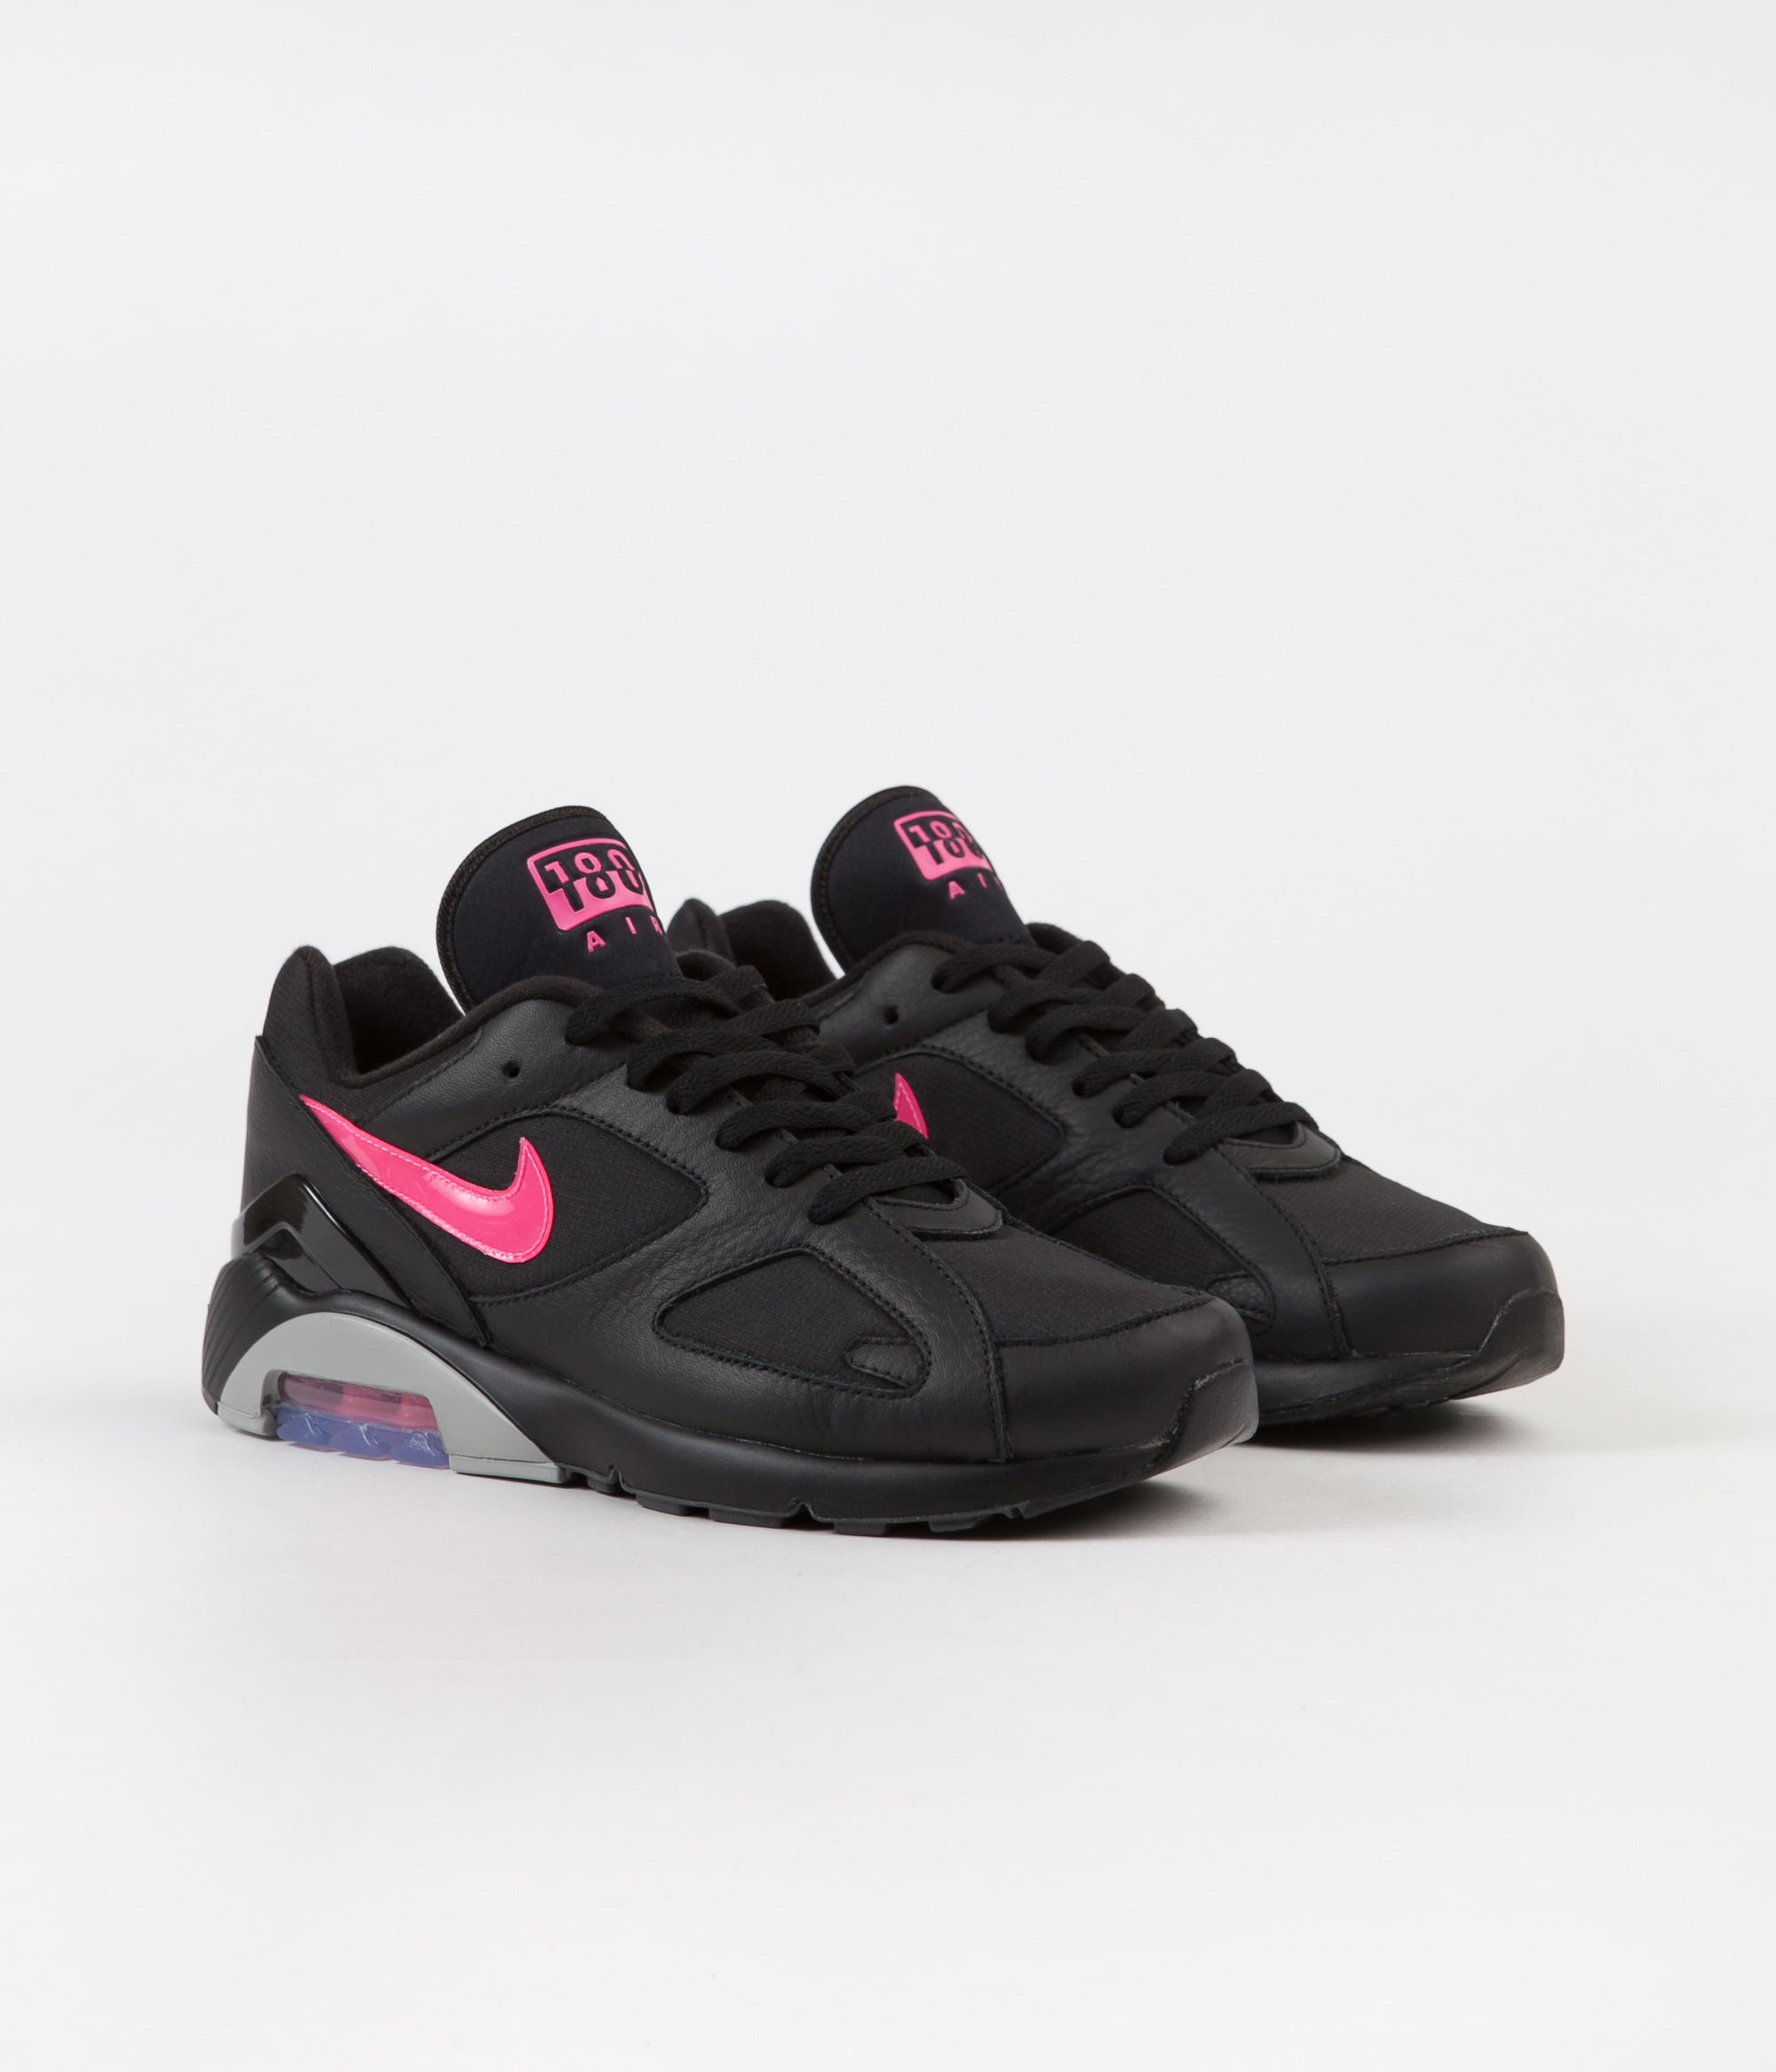 new concept e2c45 db7e1 ... Nike Air Max 180 Shoes - Black  Pink Blast - Wolf Grey ...